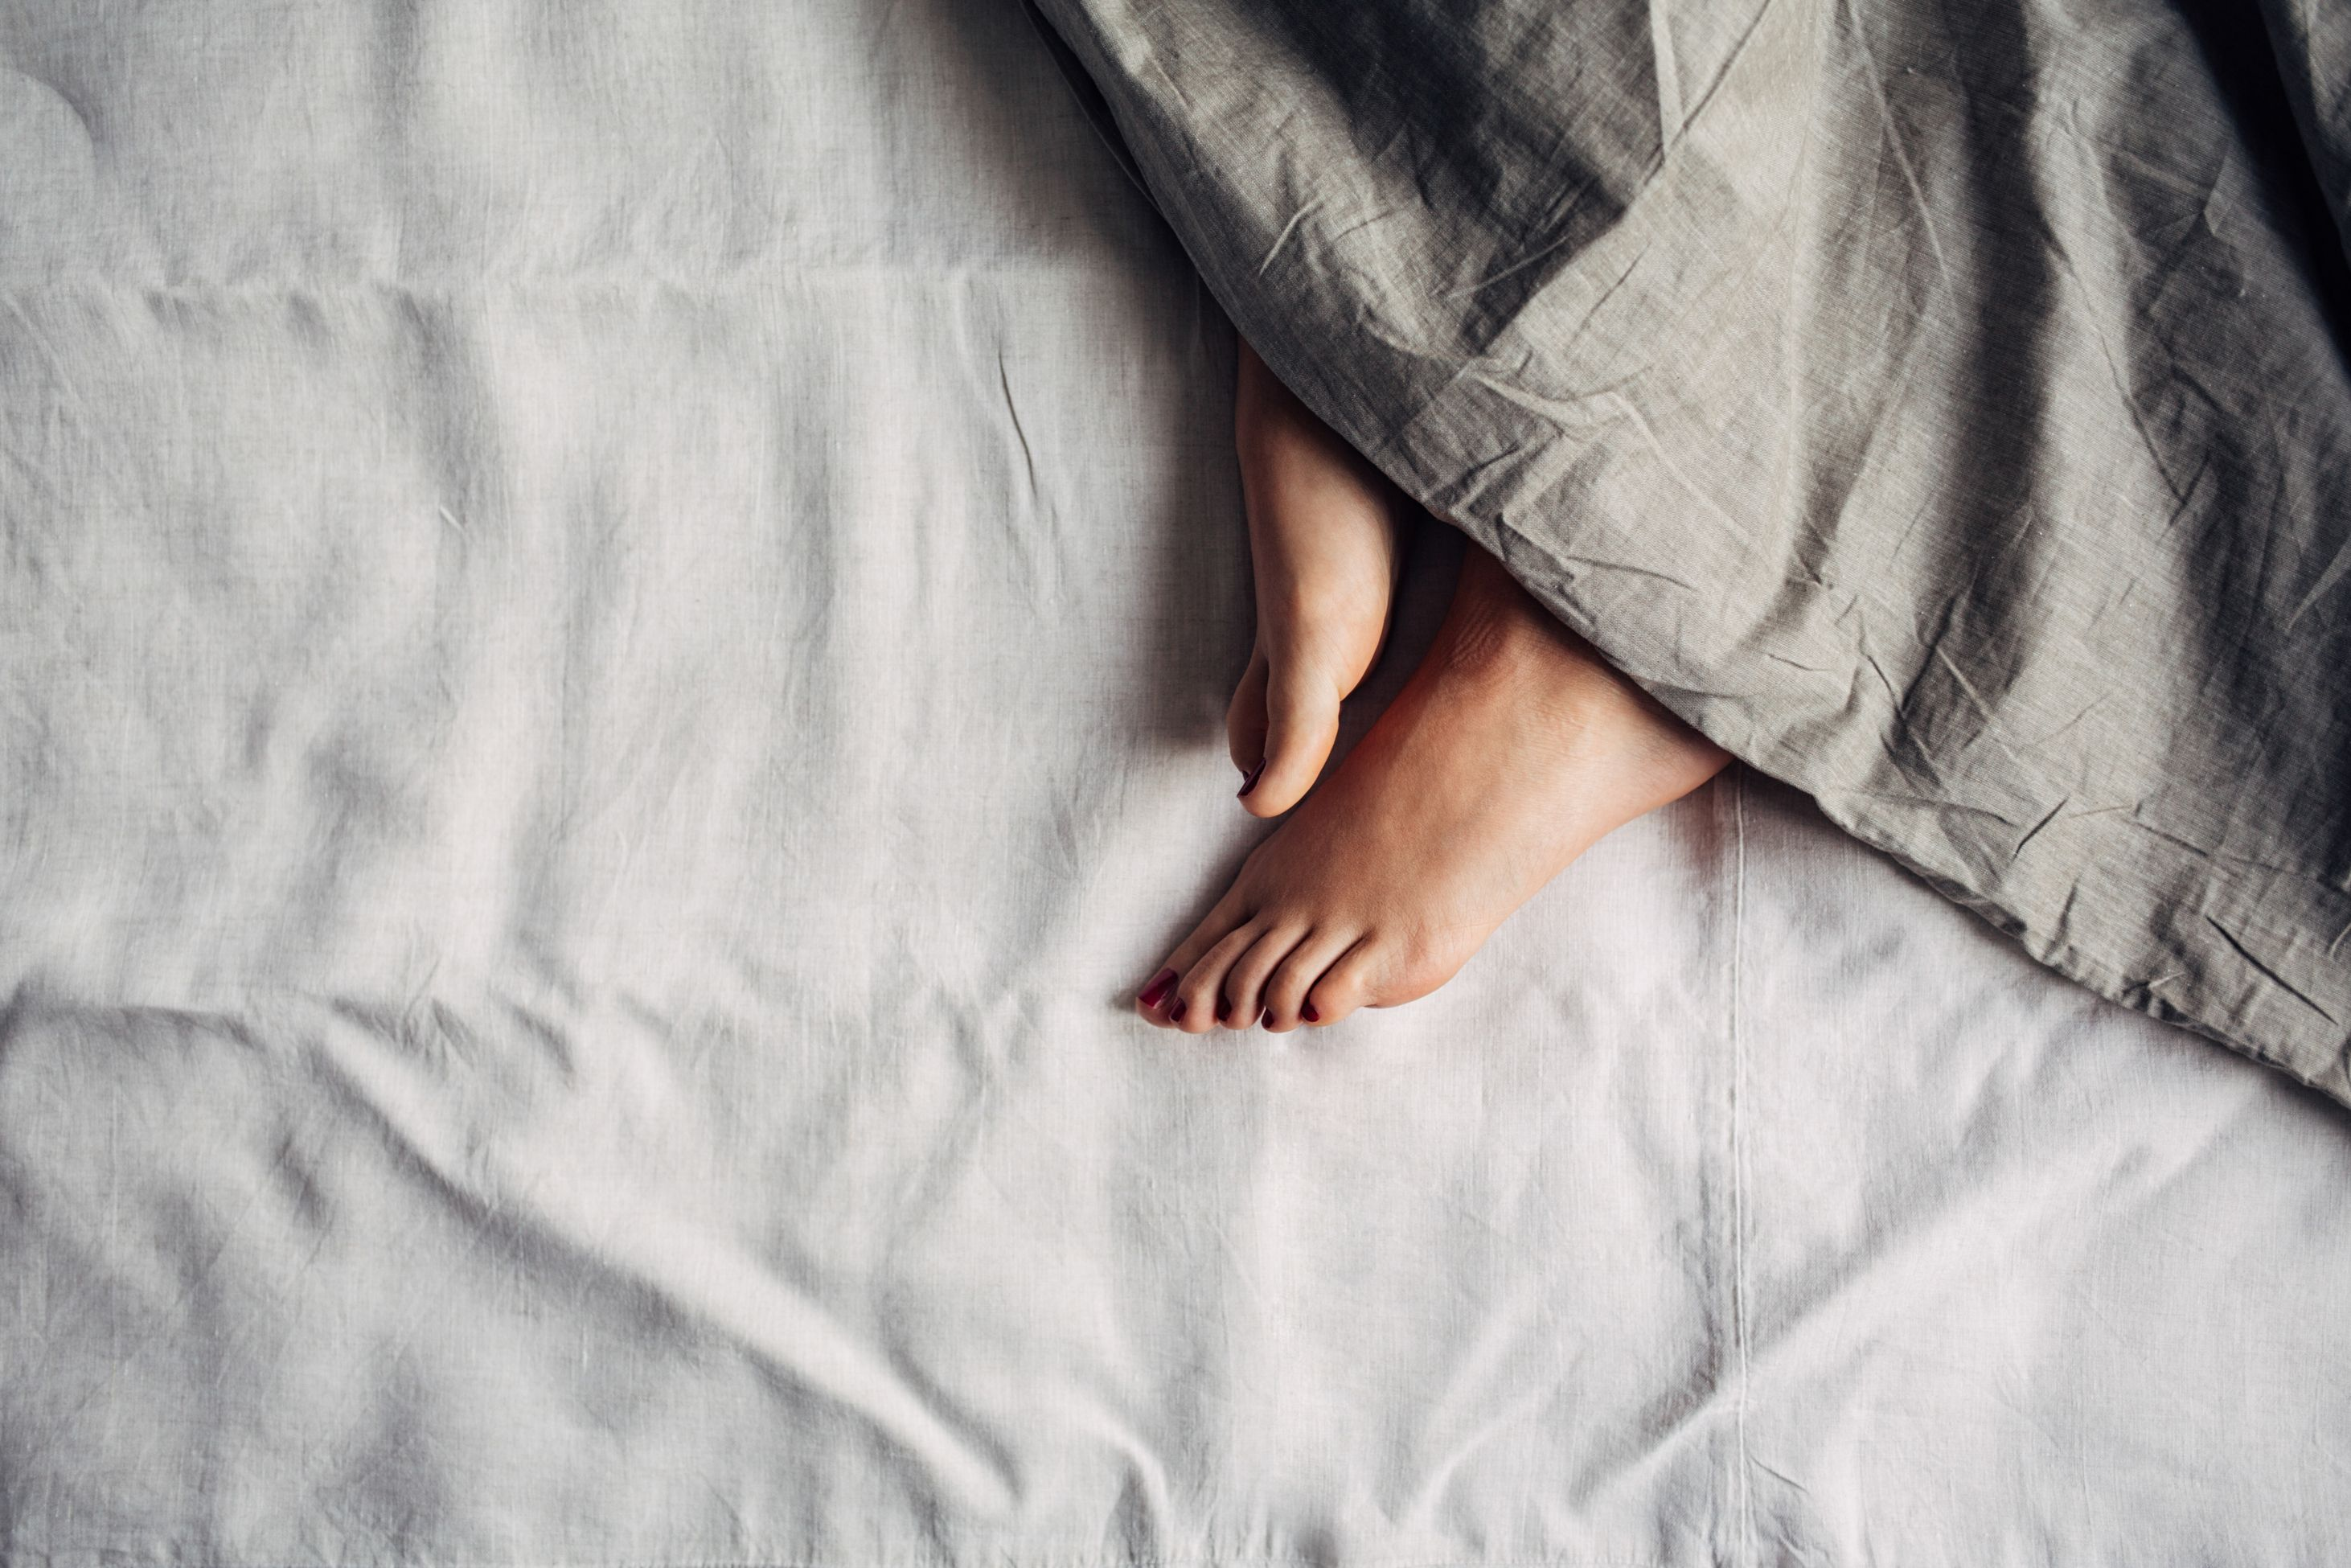 13 Things That Happen When You Sleep Over at Someone's Place